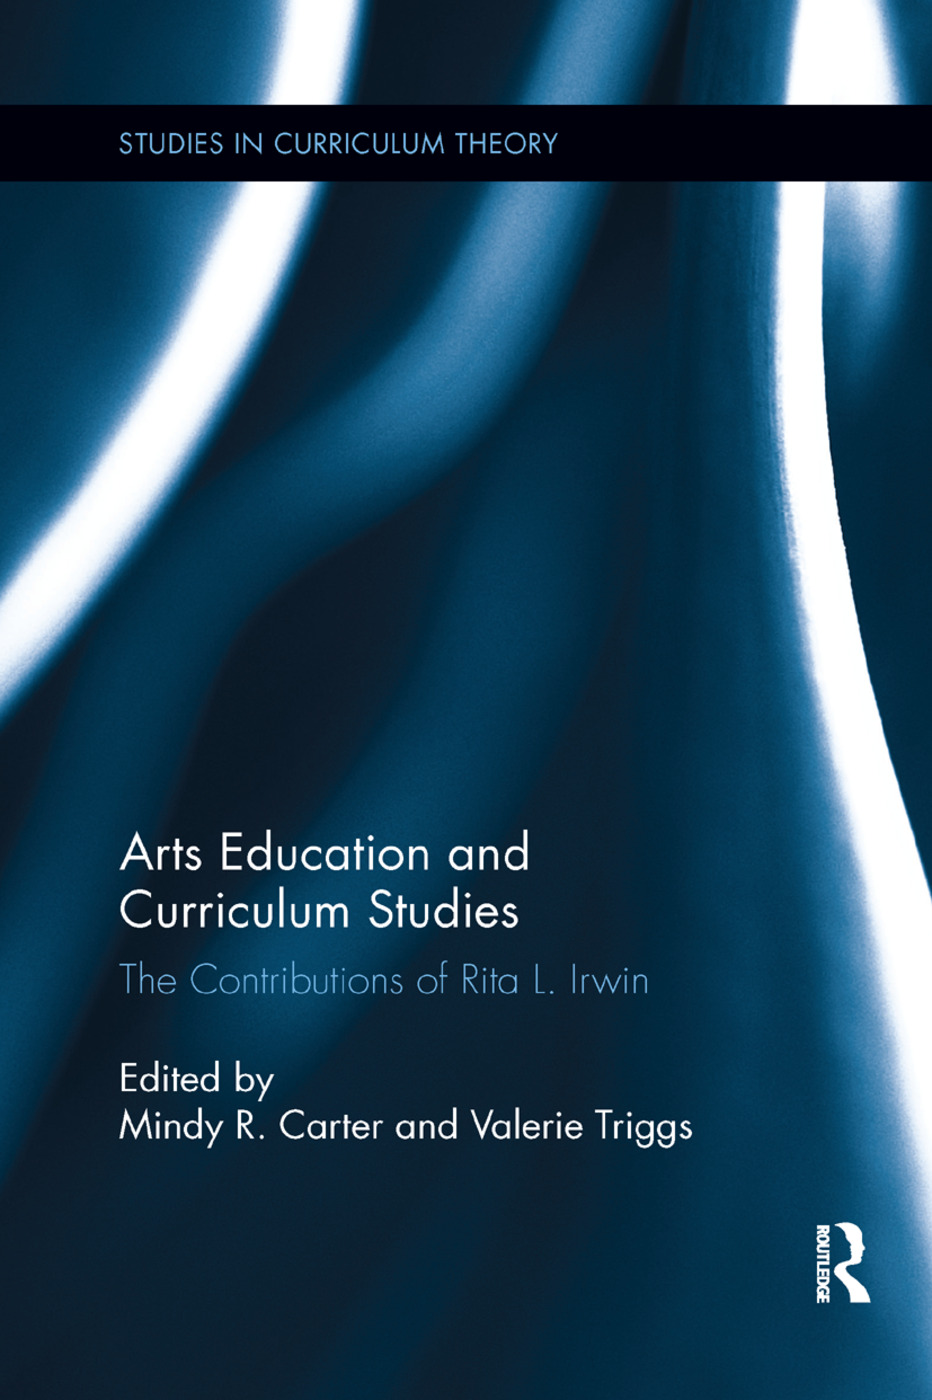 Arts Education and Curriculum Studies: The Contributions of Rita L. Irwin book cover